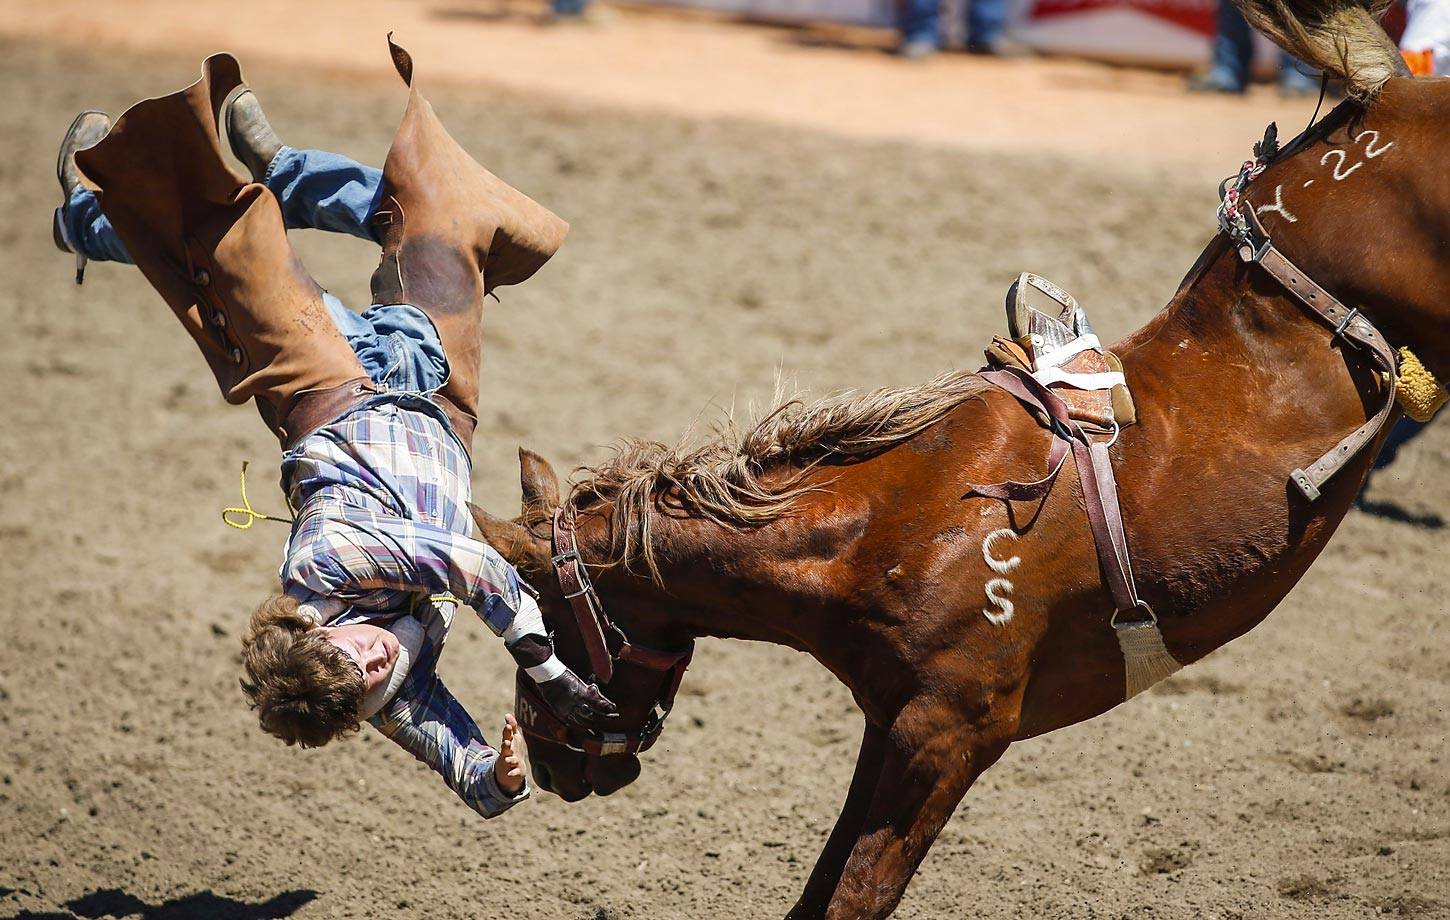 Brendon McCallum comes off Yucatan Margie during the novice bareback competition at the Calgary Stampede rodeo in Alberta.